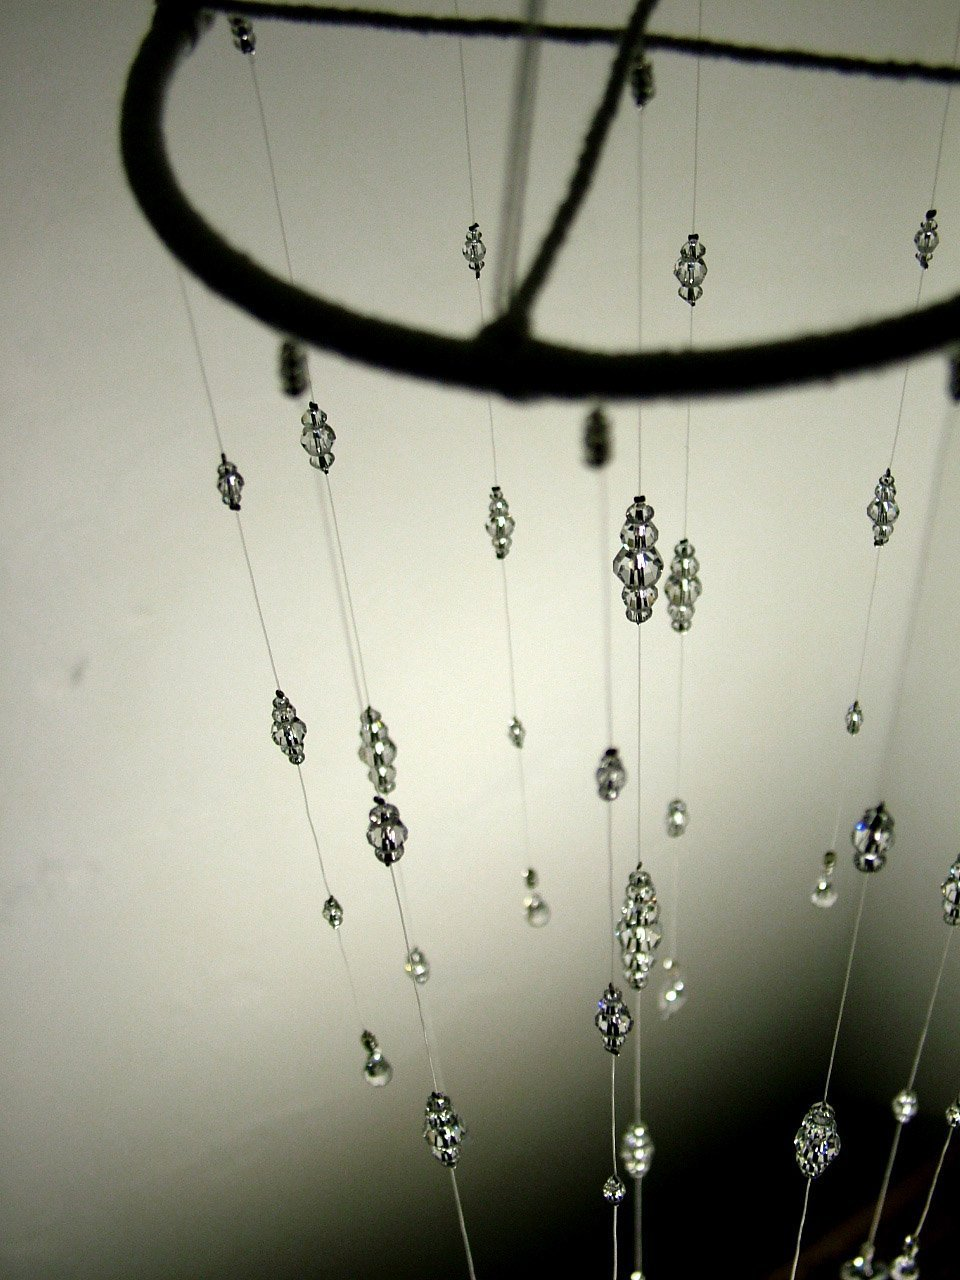 Small Bling Wedding Mobile Swarovski Crystal Baby Nursery Mobile Hanging Crystal Wedding Feature Baby Crystal Mobile Wedding Decor Babyshower Gift